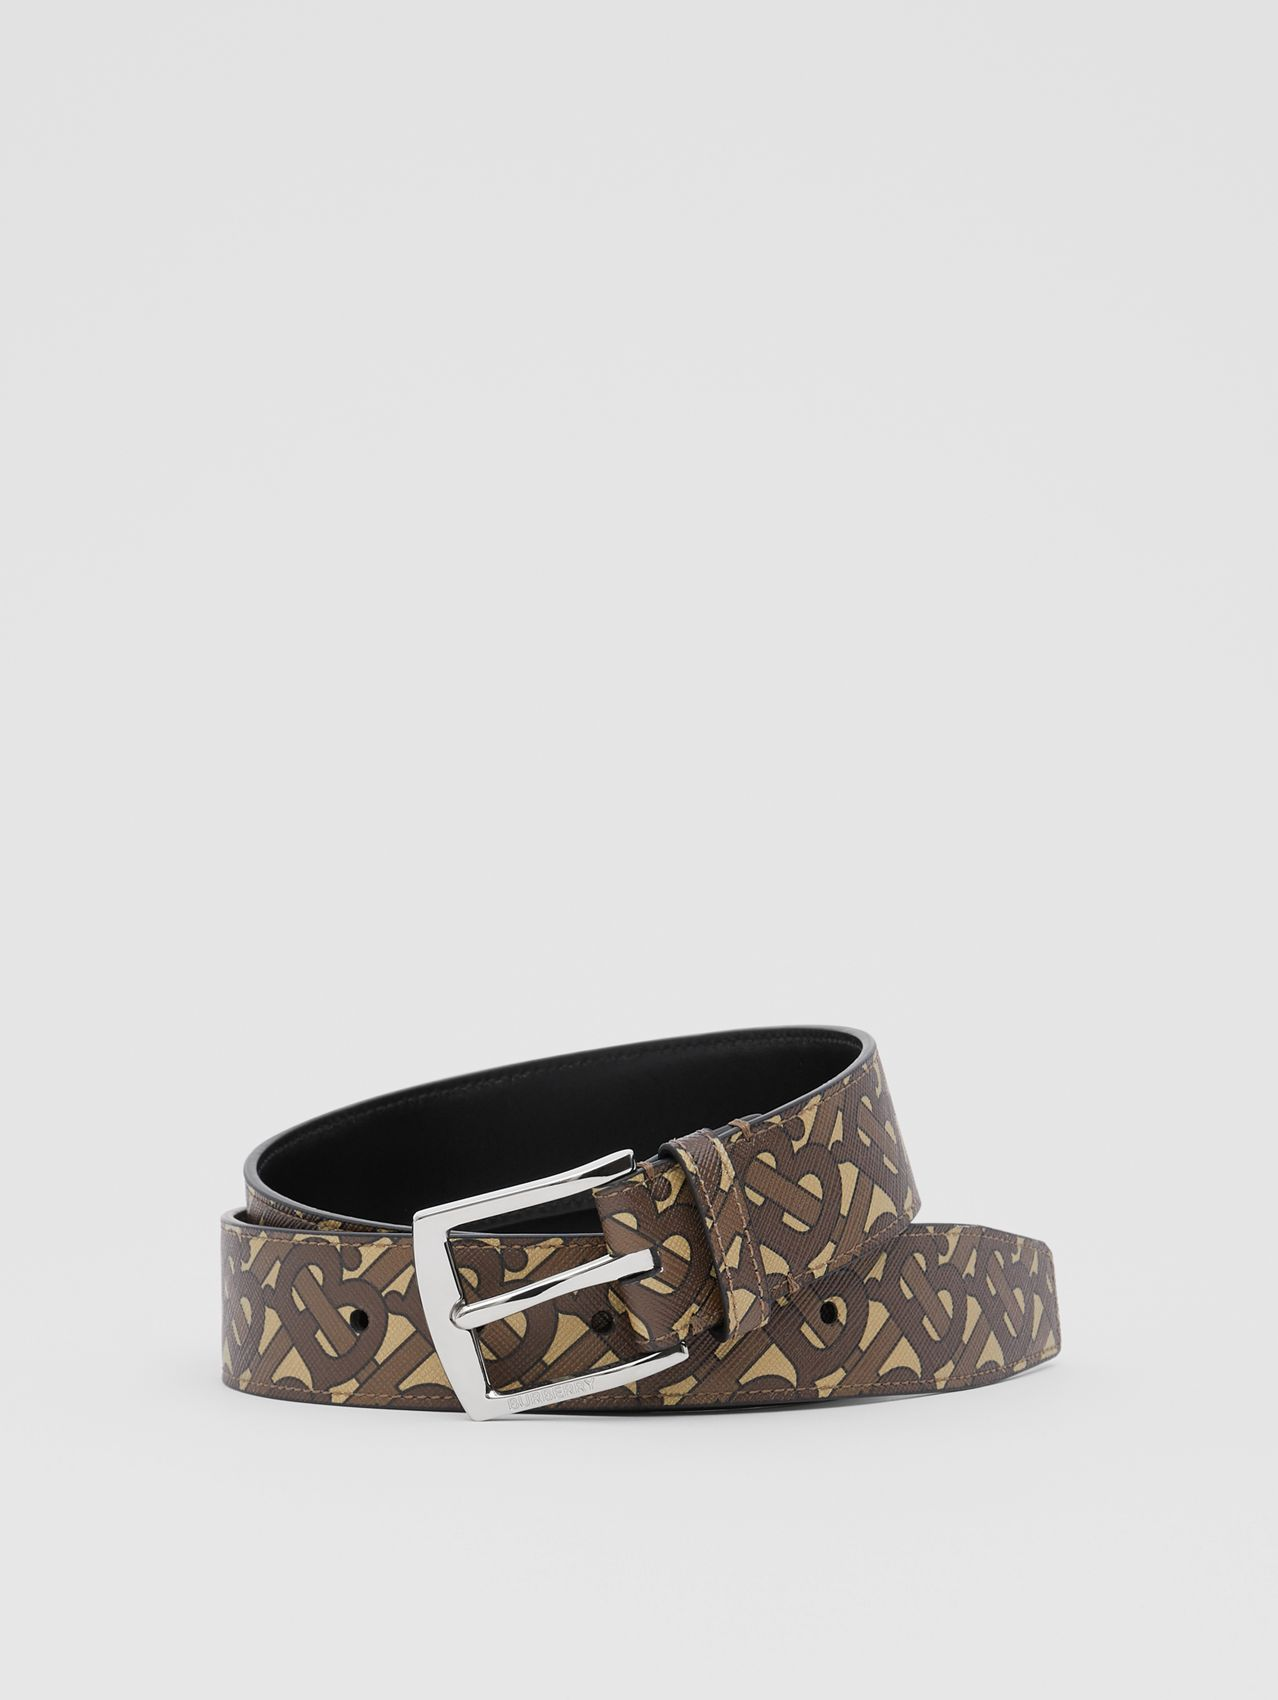 Monogram E-canvas Belt in Bridle Brown